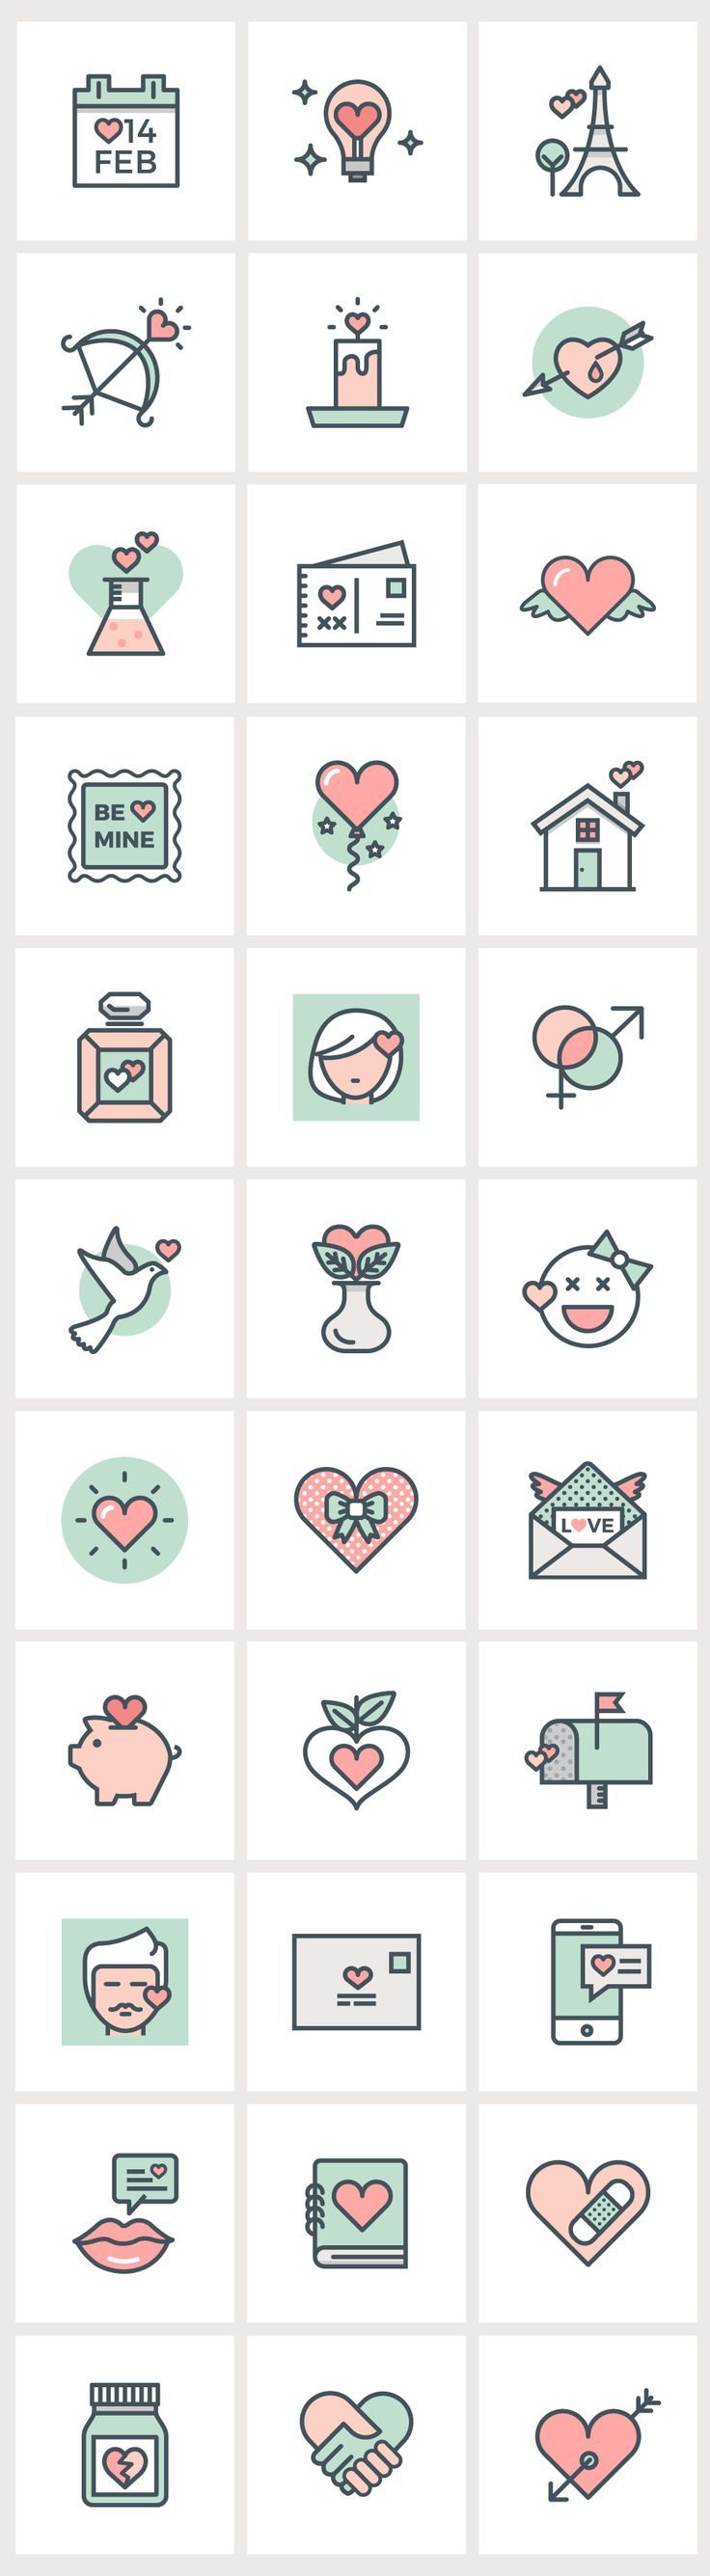 #Valentine's Day Flat Line #Icons